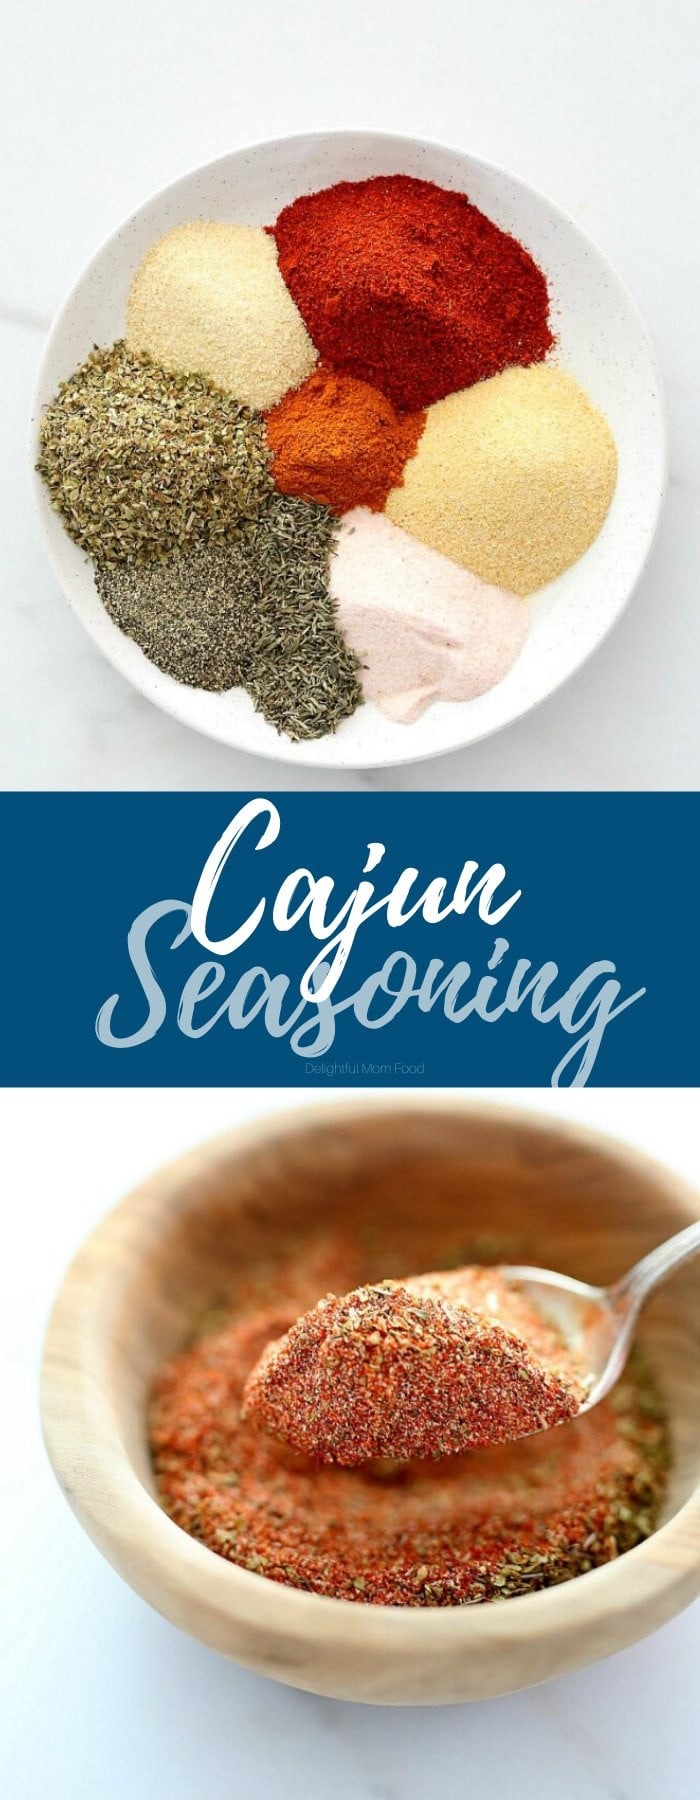 Spicy Cajun shrimp seasoning is a blend of spices and herbs that brings bold kick to seafood recipes! Anytime you are out of store-bought Cajun seasoning mix, make it at home combining paprika, garlic powder, onion powder, salt, pepper, cayenne pepper, oregano and thyme. Use it for all spicy seafood recipes! #Cajunshrimpseasoning #cajun #seasoning #mix #recipe #spices #herbs #homemade | Recipe at Delightful Mom Food